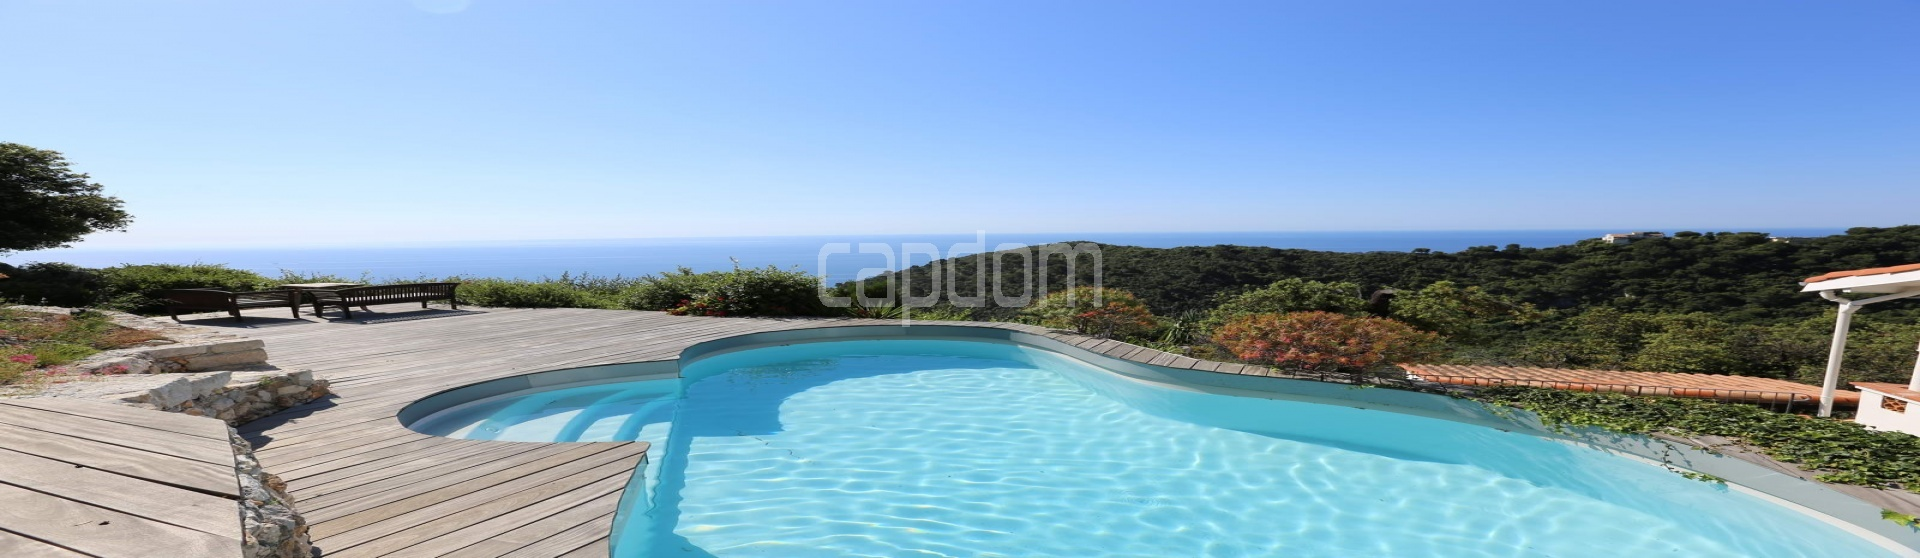 Charming Villa for sale with panoramic view in Villefranche-sur-Mer - panoramic view